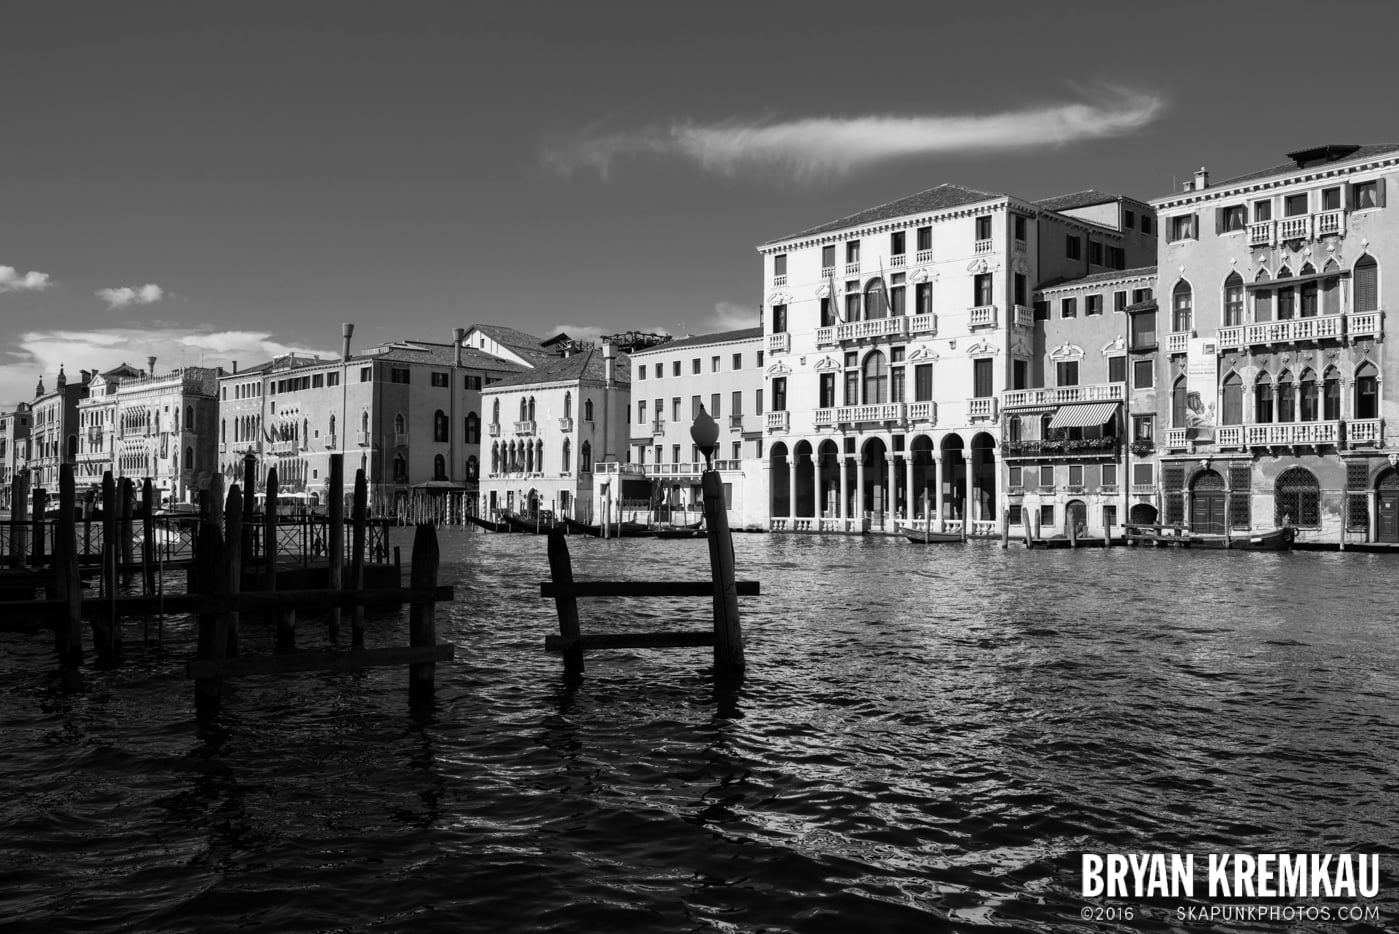 Italy Vacation - Day 4: Venice - 9.12.13 (57)